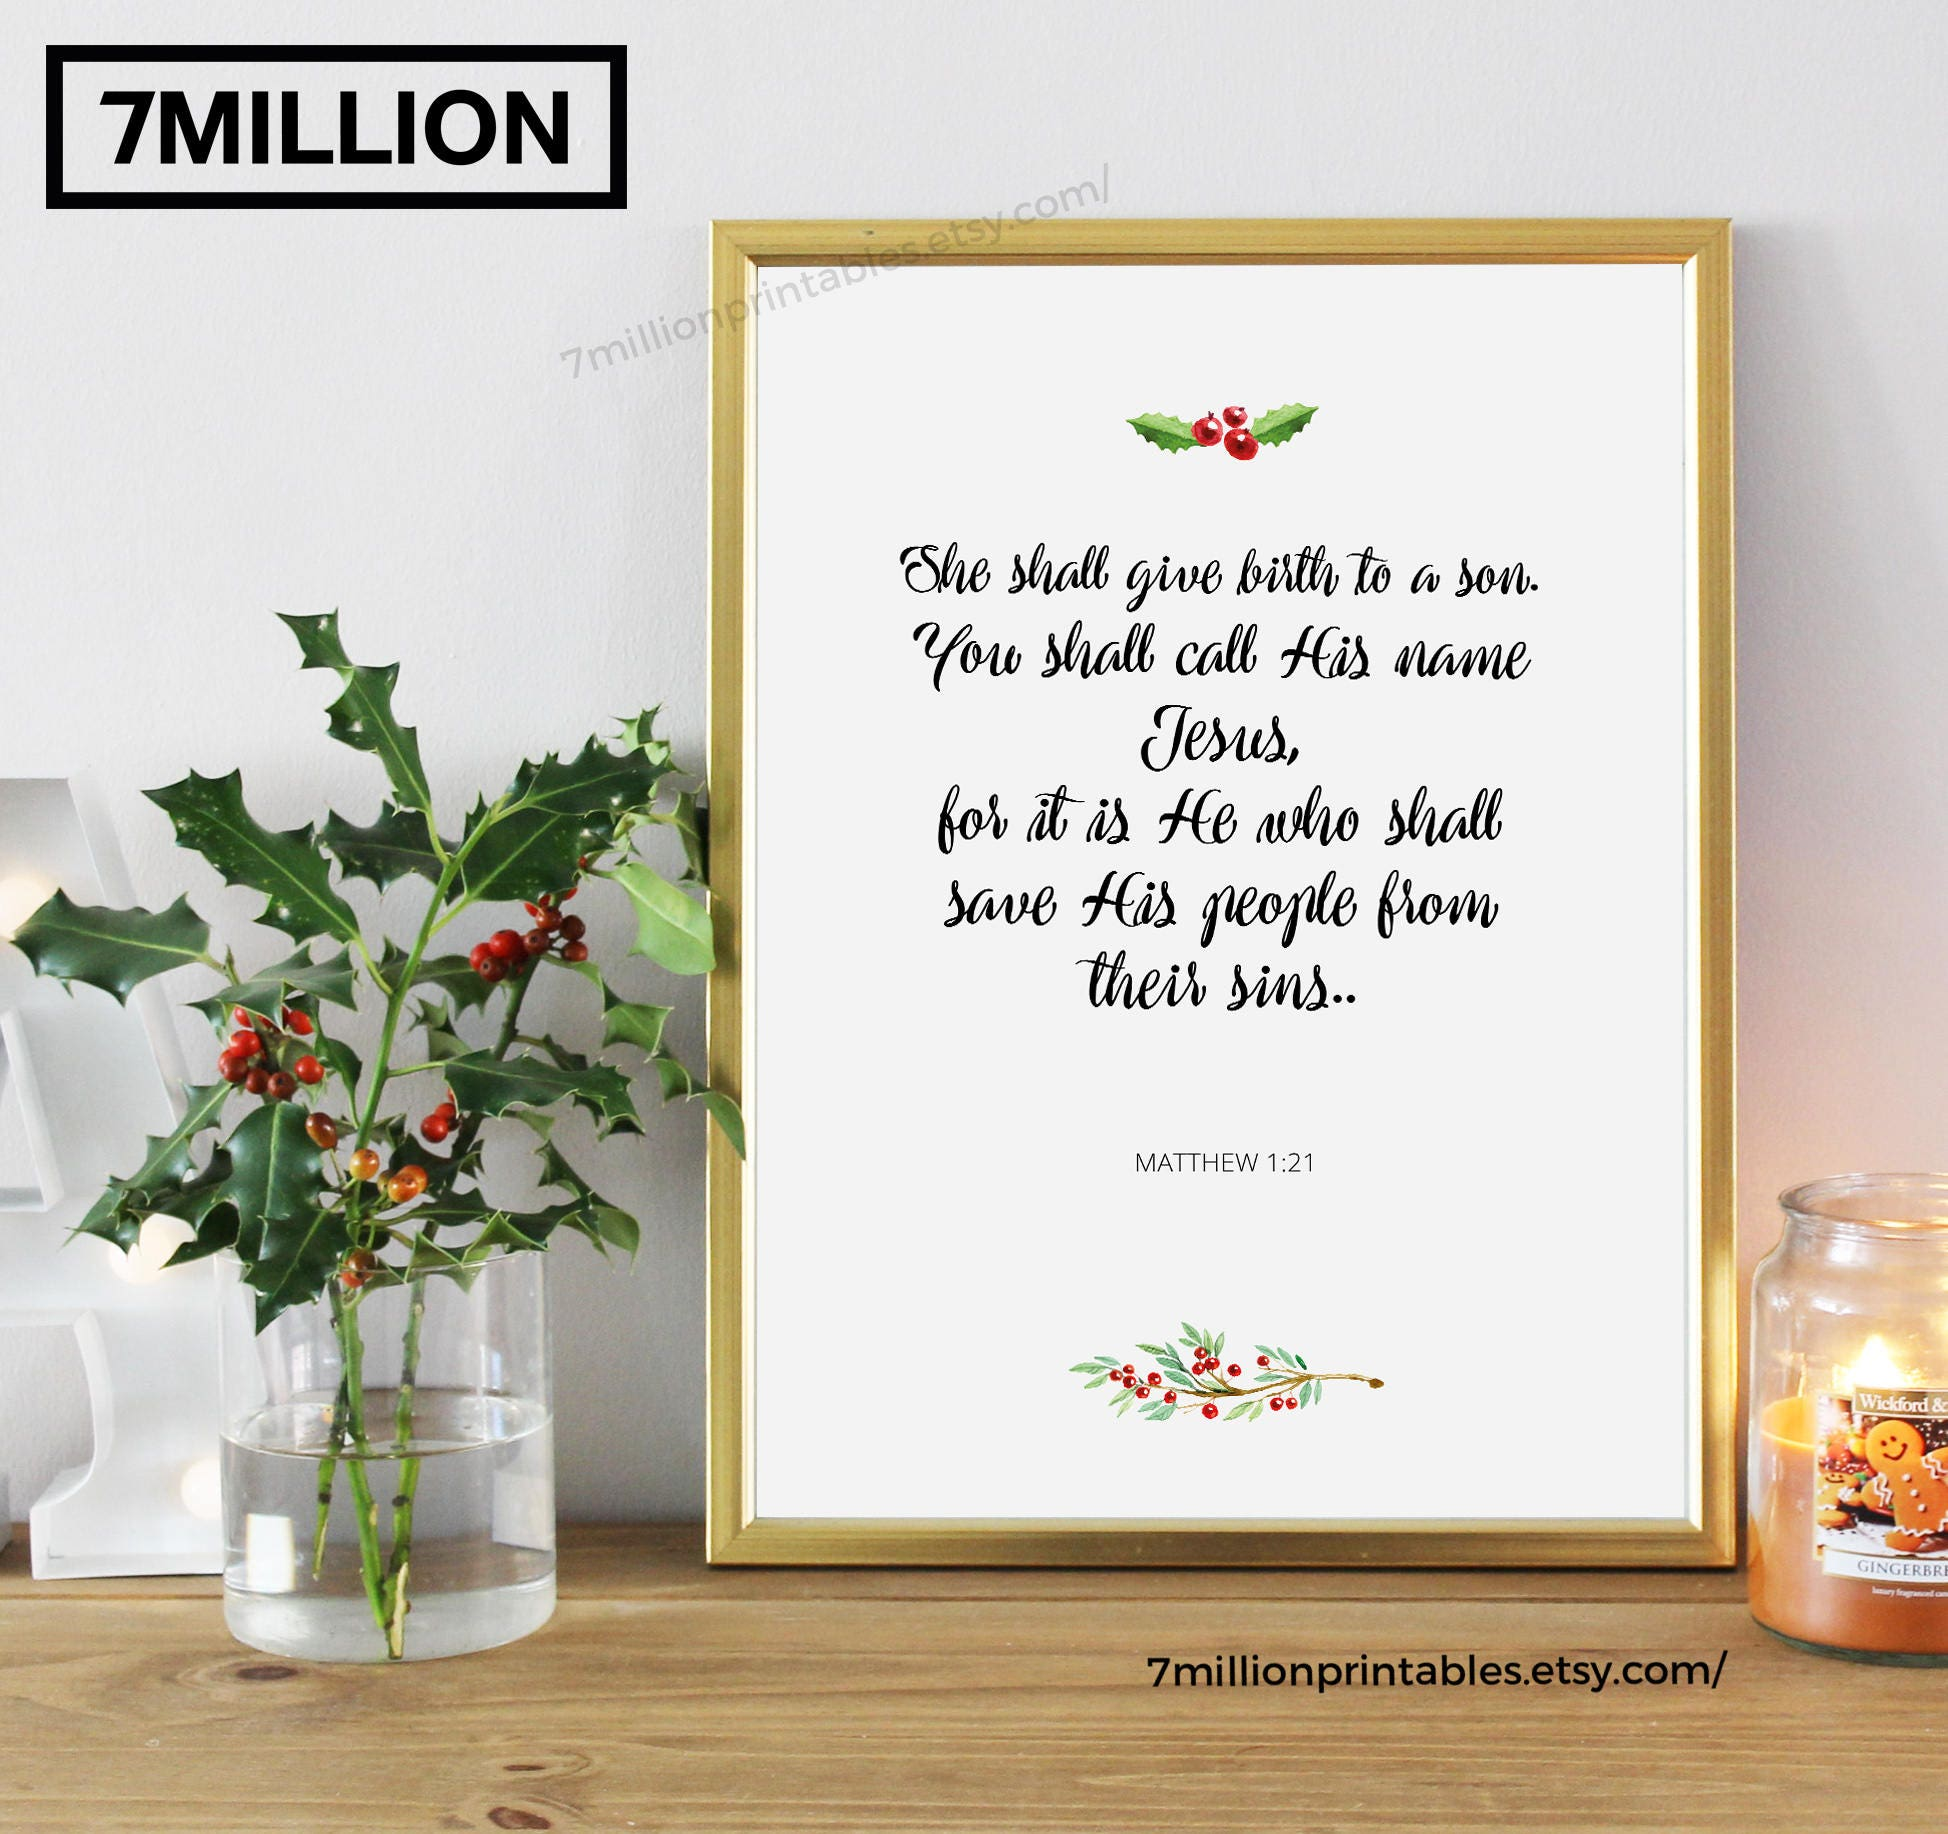 Matthew 1:21, She Shall Give Birth To A Son, Bible Quote Printable